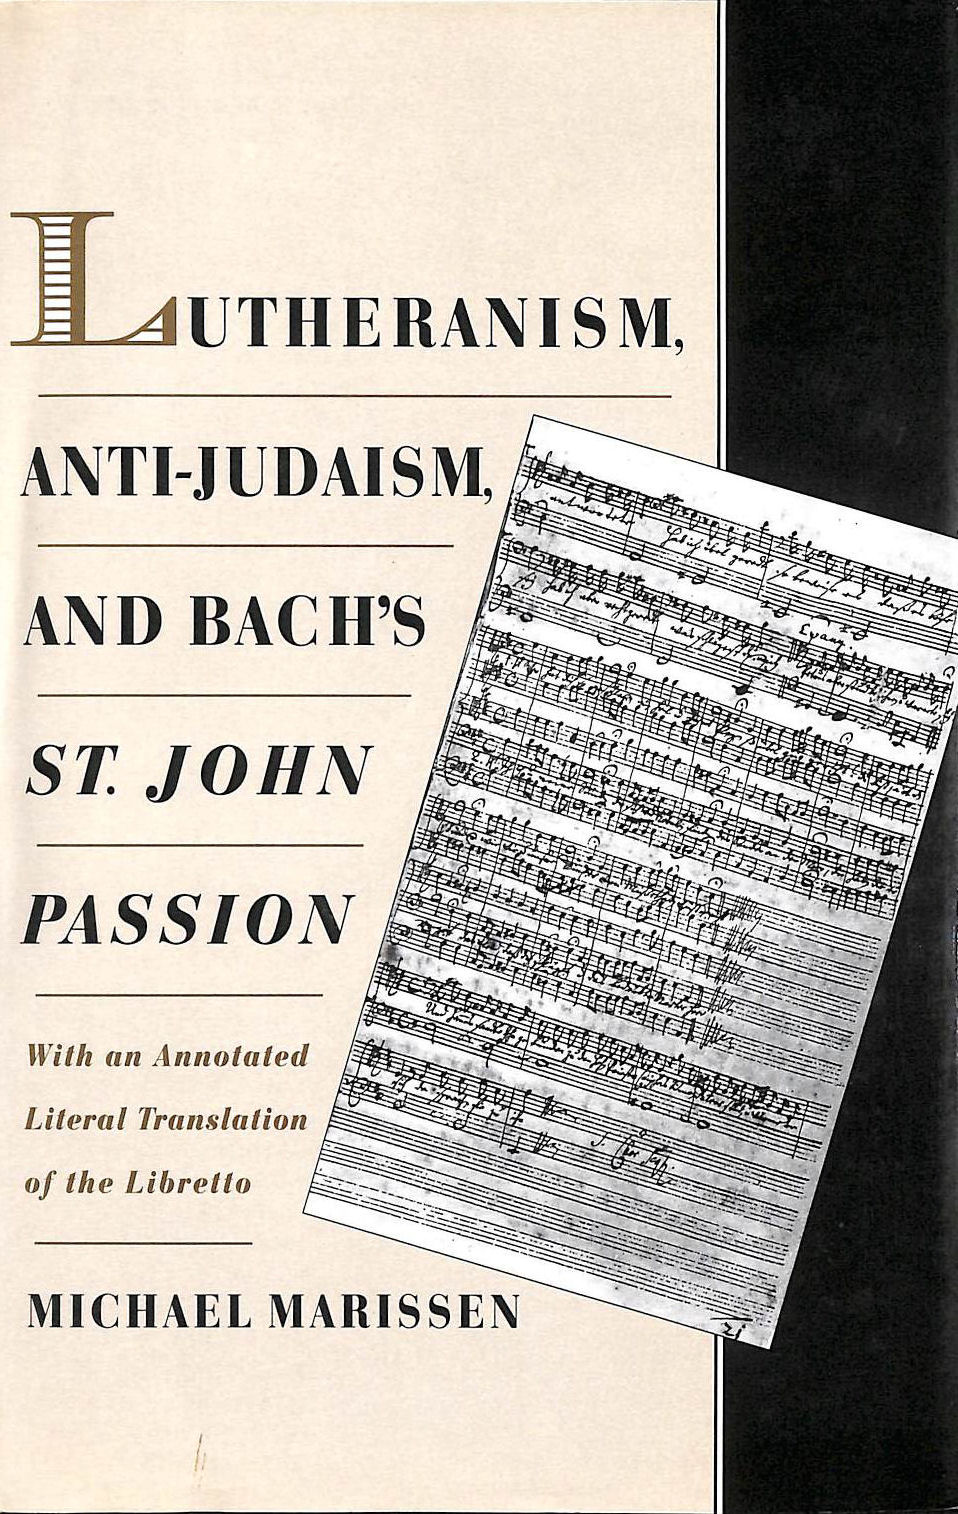 Image for Lutheranism, Anti-Judaism, and Bach's St. John Passion: With an Annotated Literal Translation of the Libretto